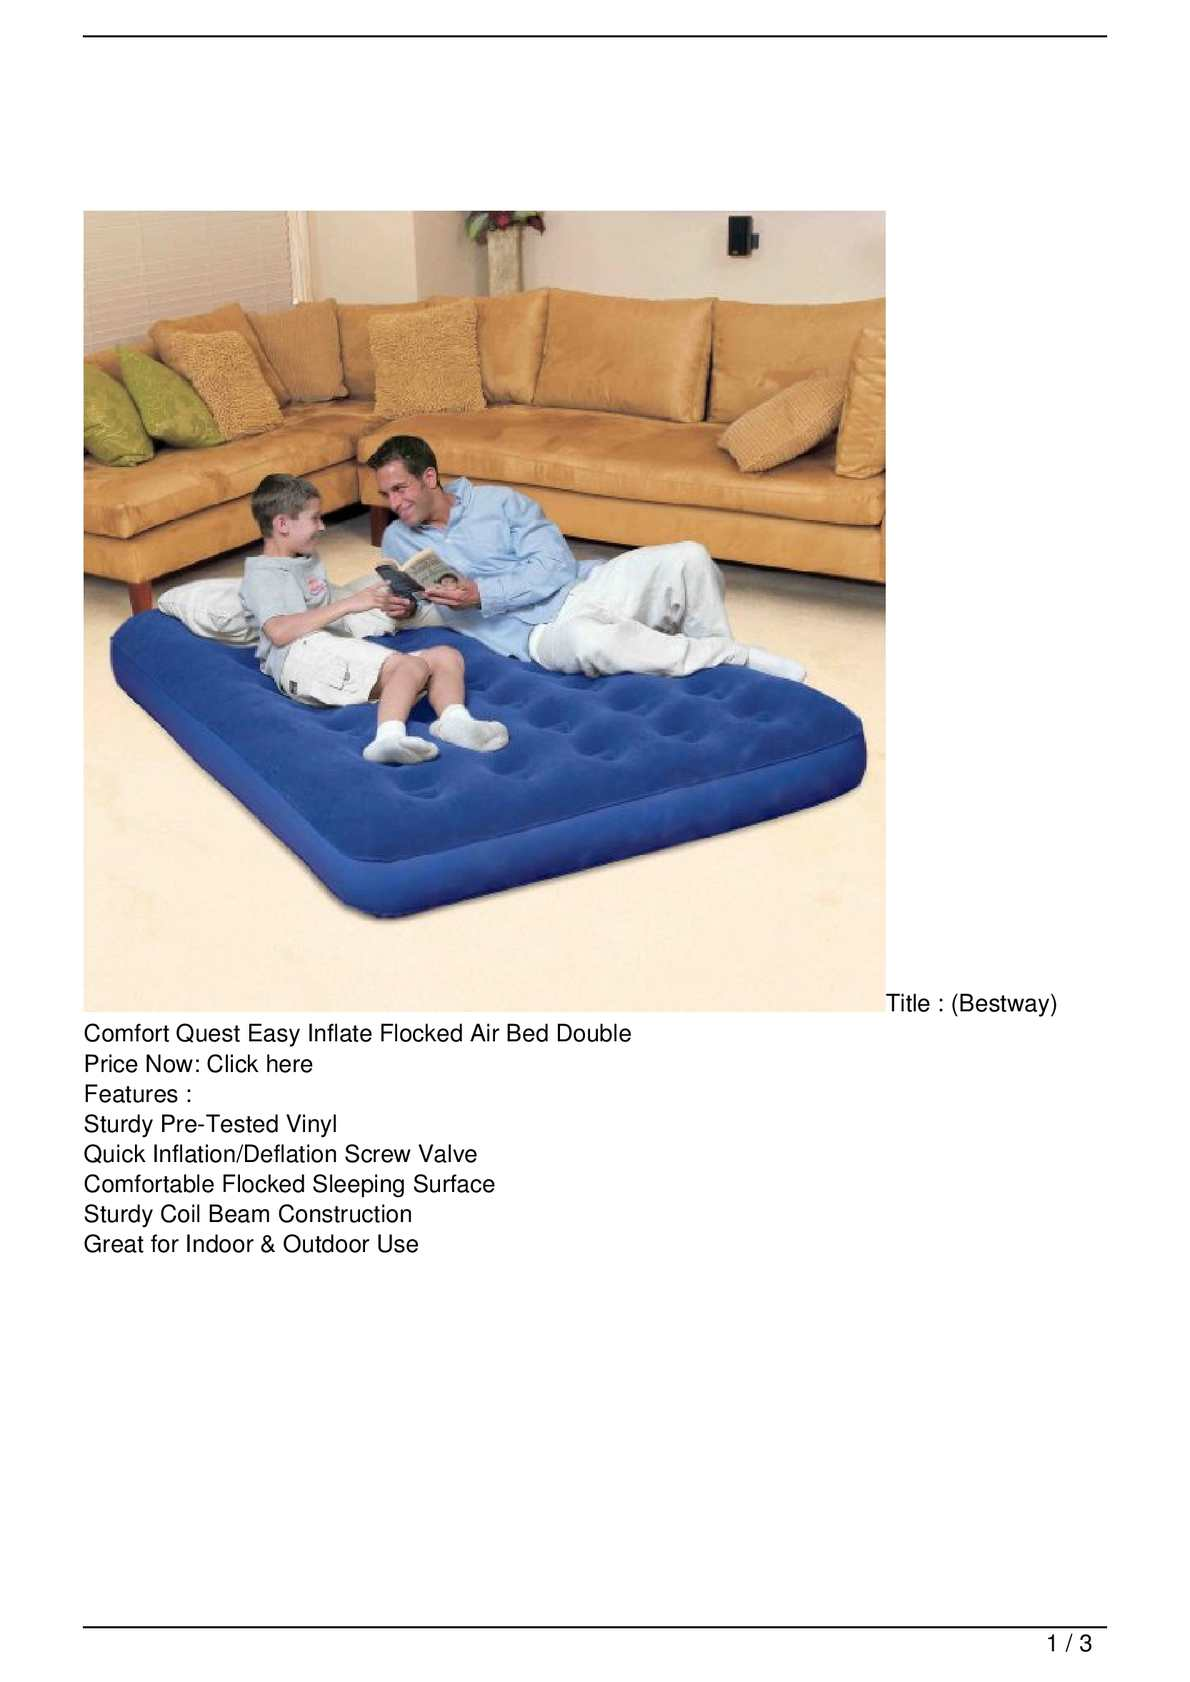 Bestway Comfort Quest Easy Inflate Flocked Air Bed Double